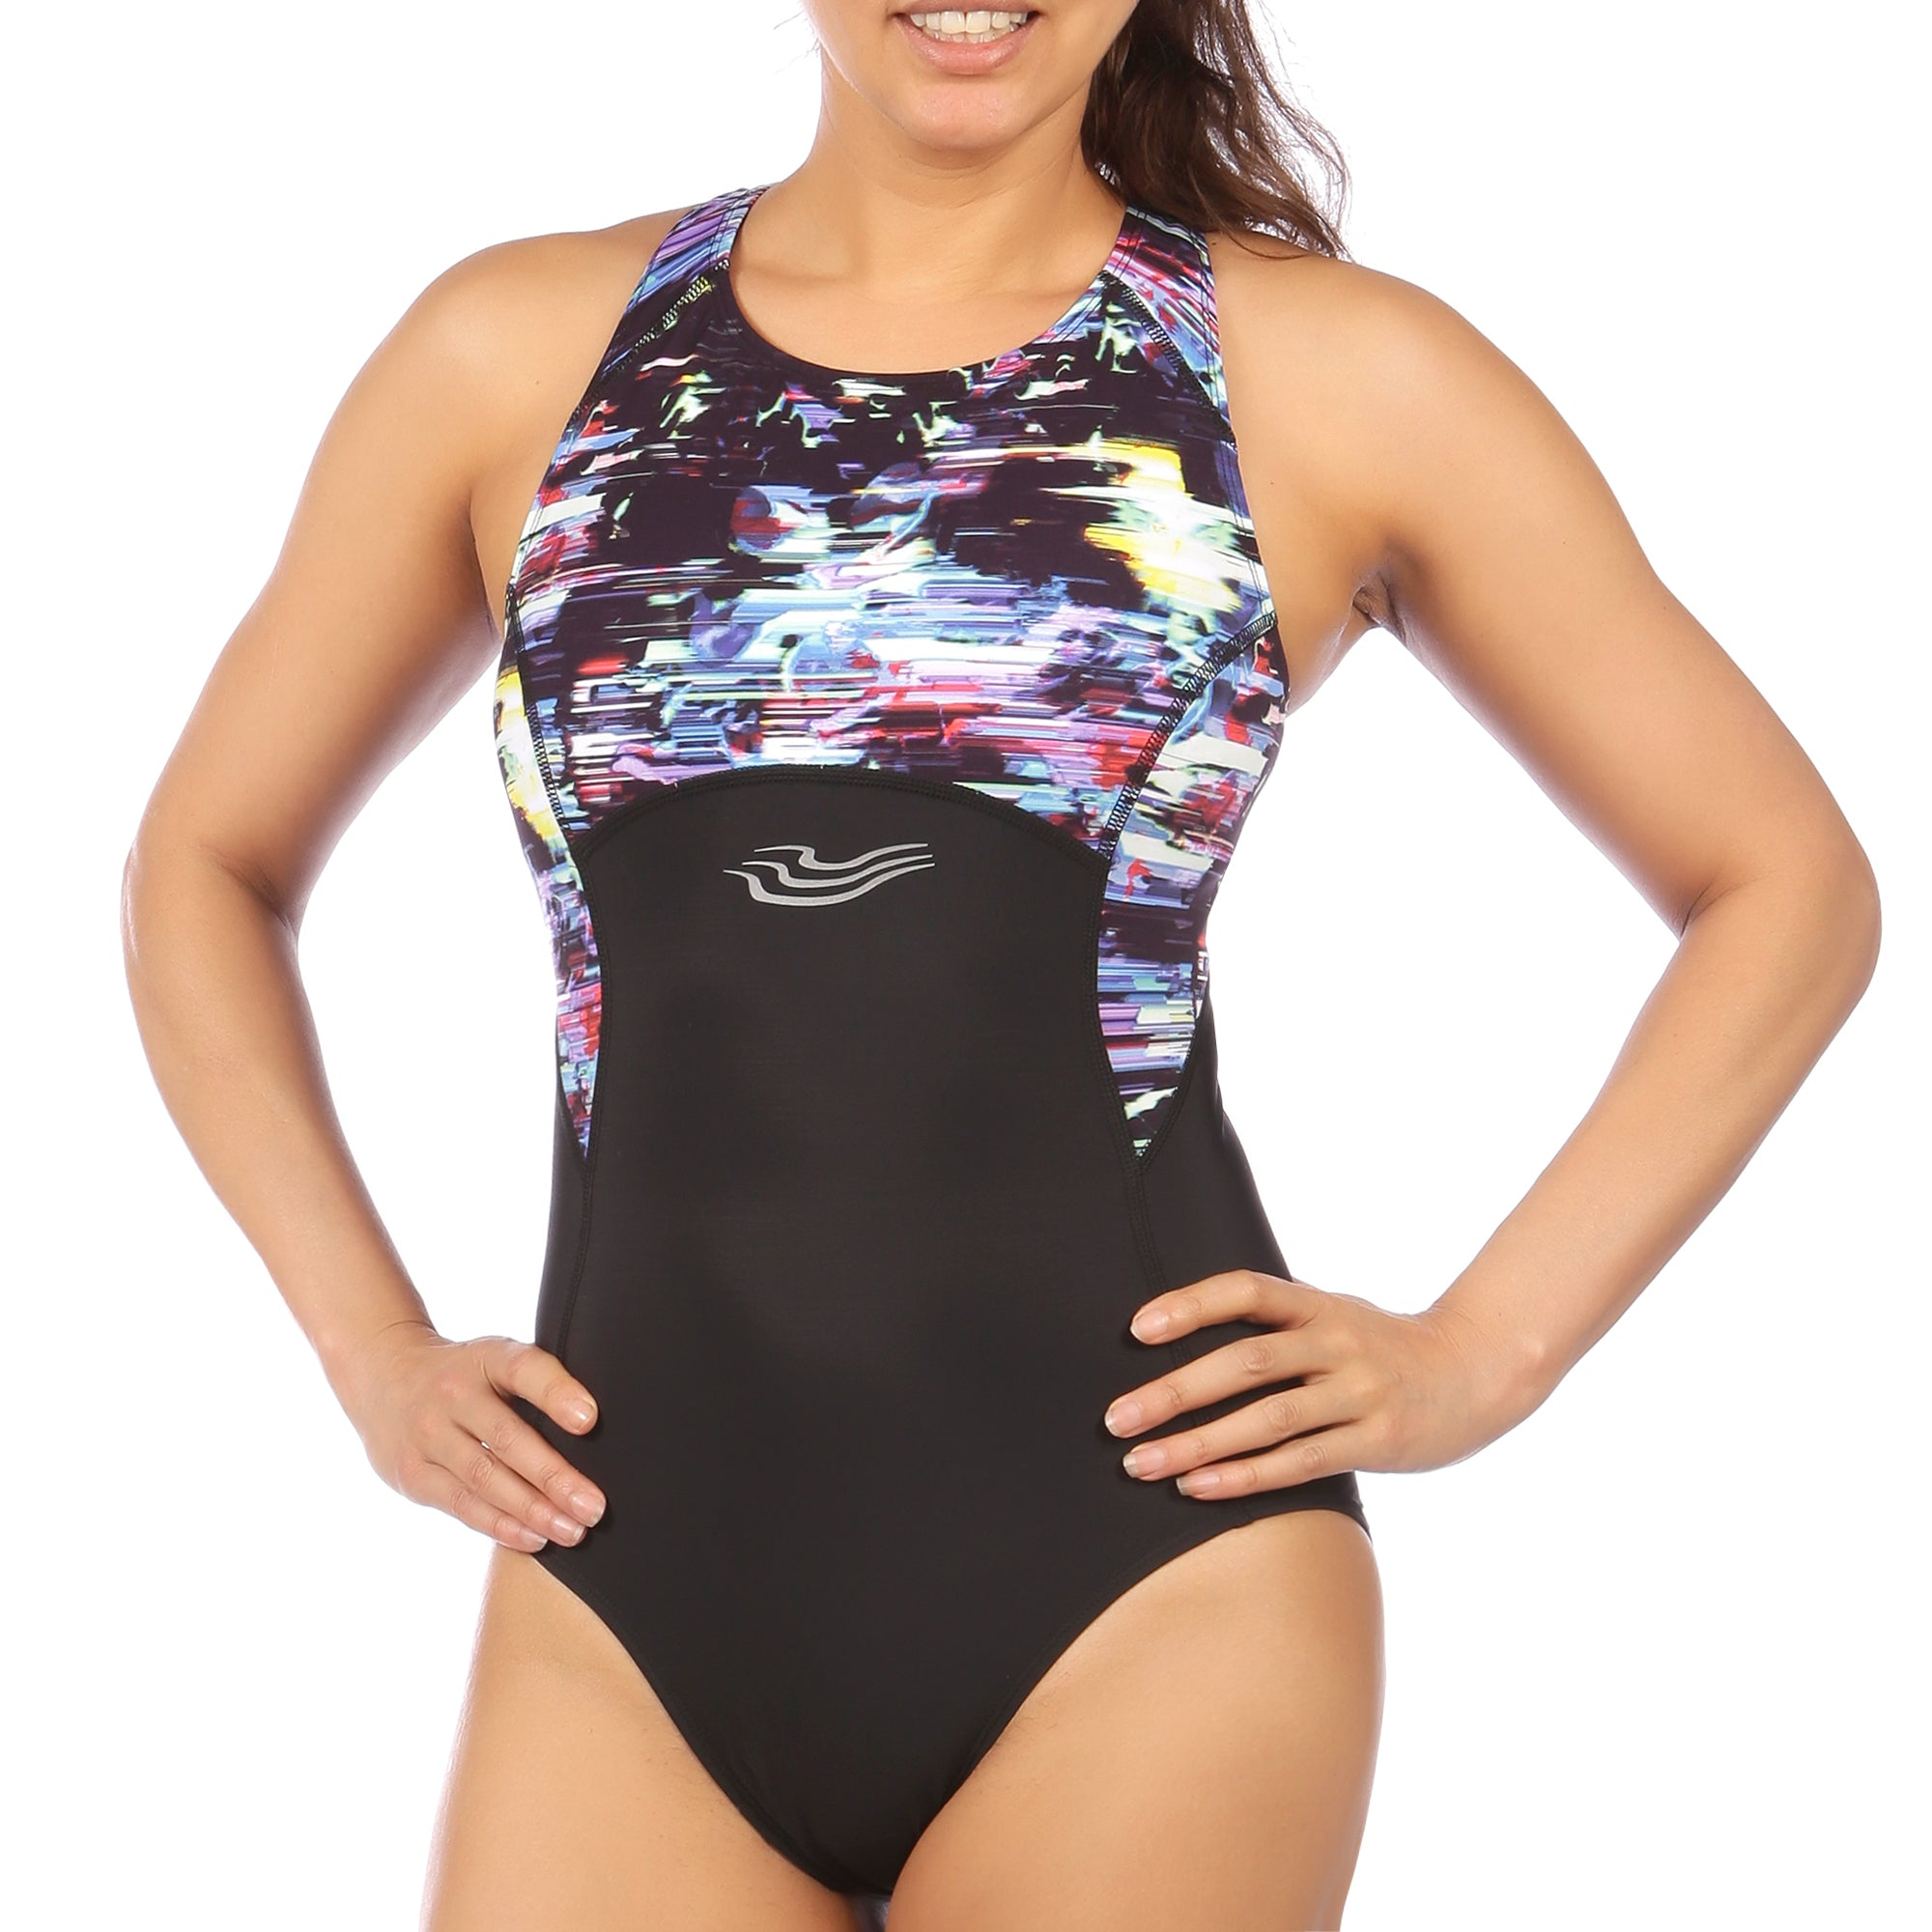 Flow & Gait Swimsuit and Capri Tri Set in Glitched Floral